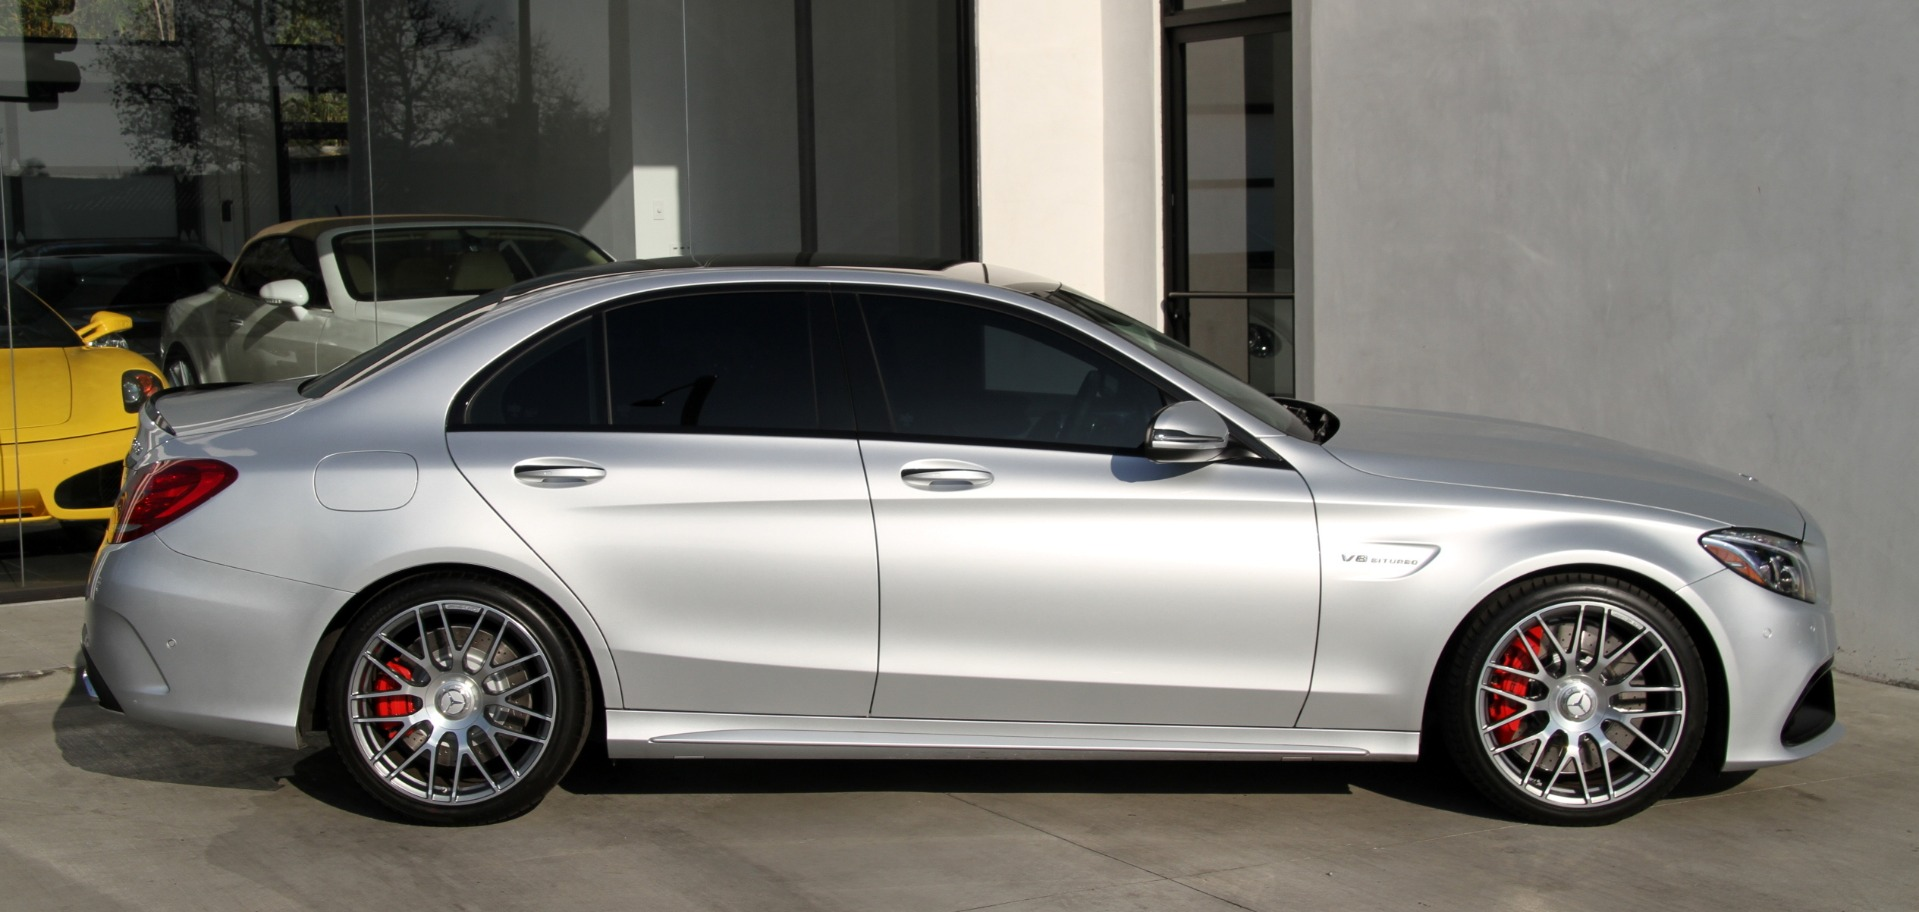 2016 mercedes benz c63 s amg stock 6004 for sale near for Nearest mercedes benz